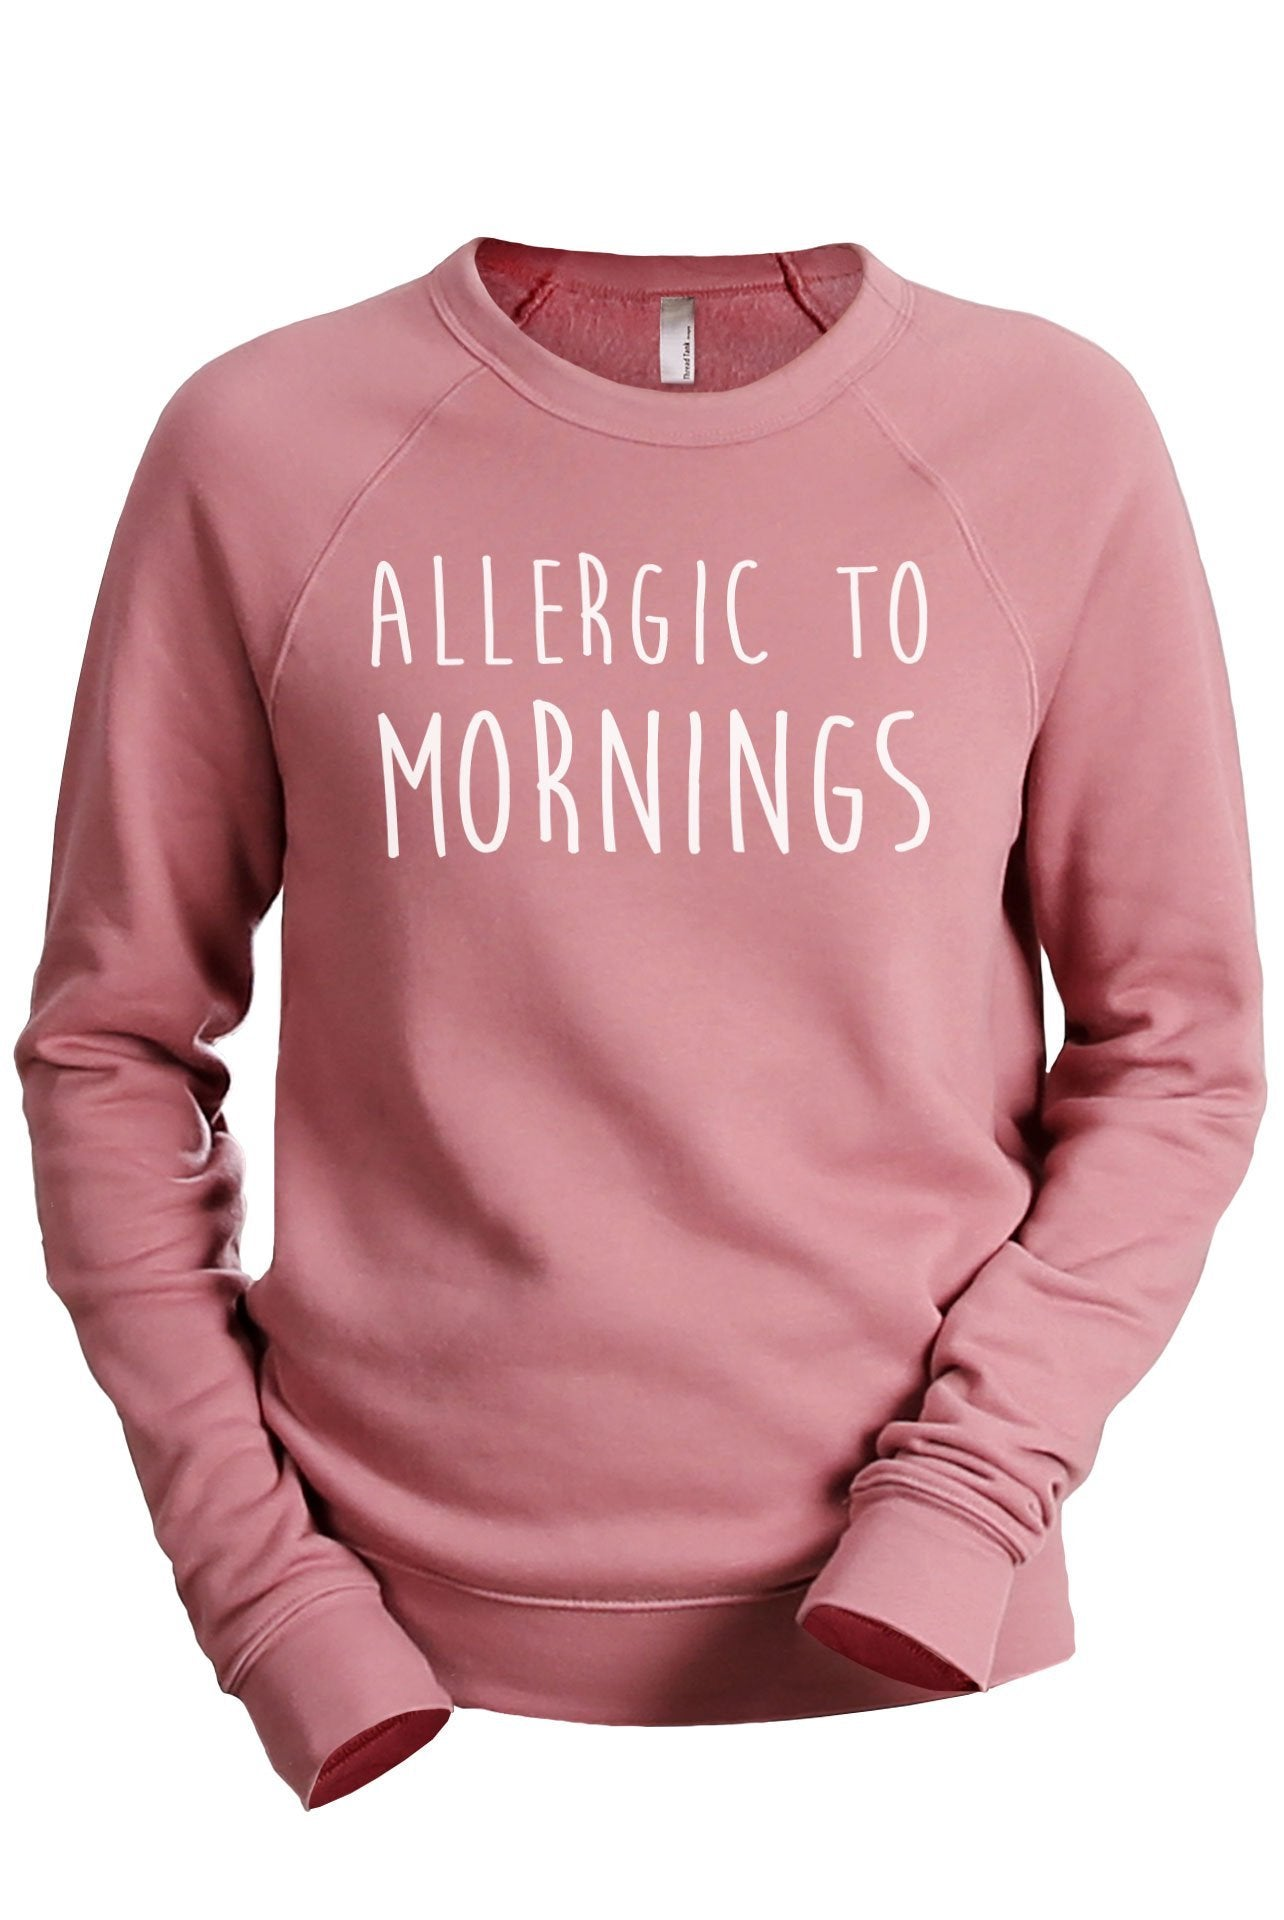 Allergic To Mornings Women's Cozy Fleece Longsleeves Sweater Rouge Closeup Details